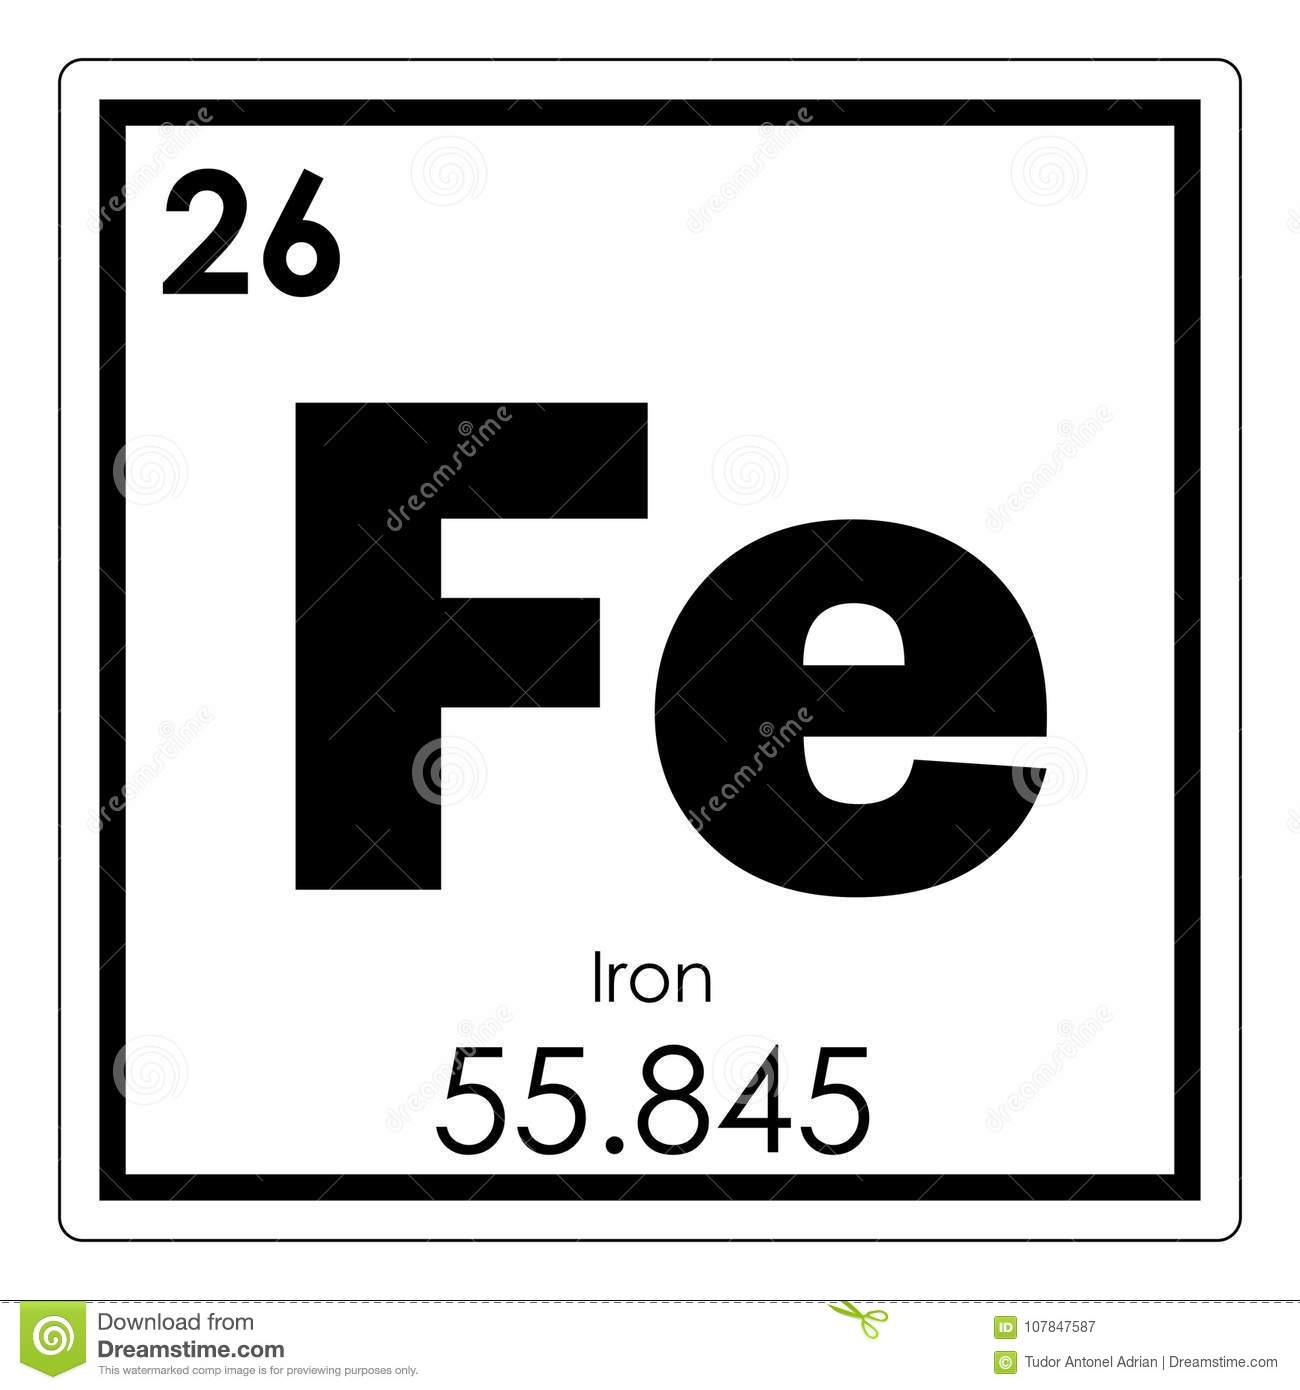 Iron chemical element stock illustration illustration of science iron chemical element urtaz Image collections